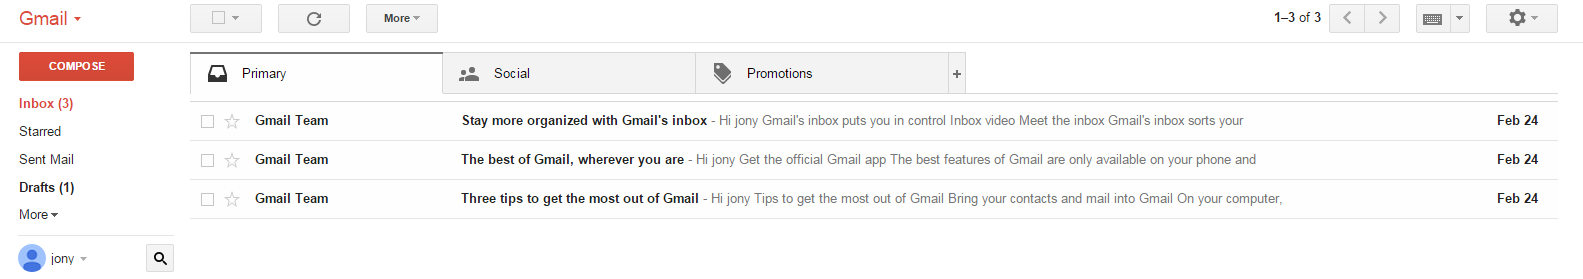 inbox-gmail-main